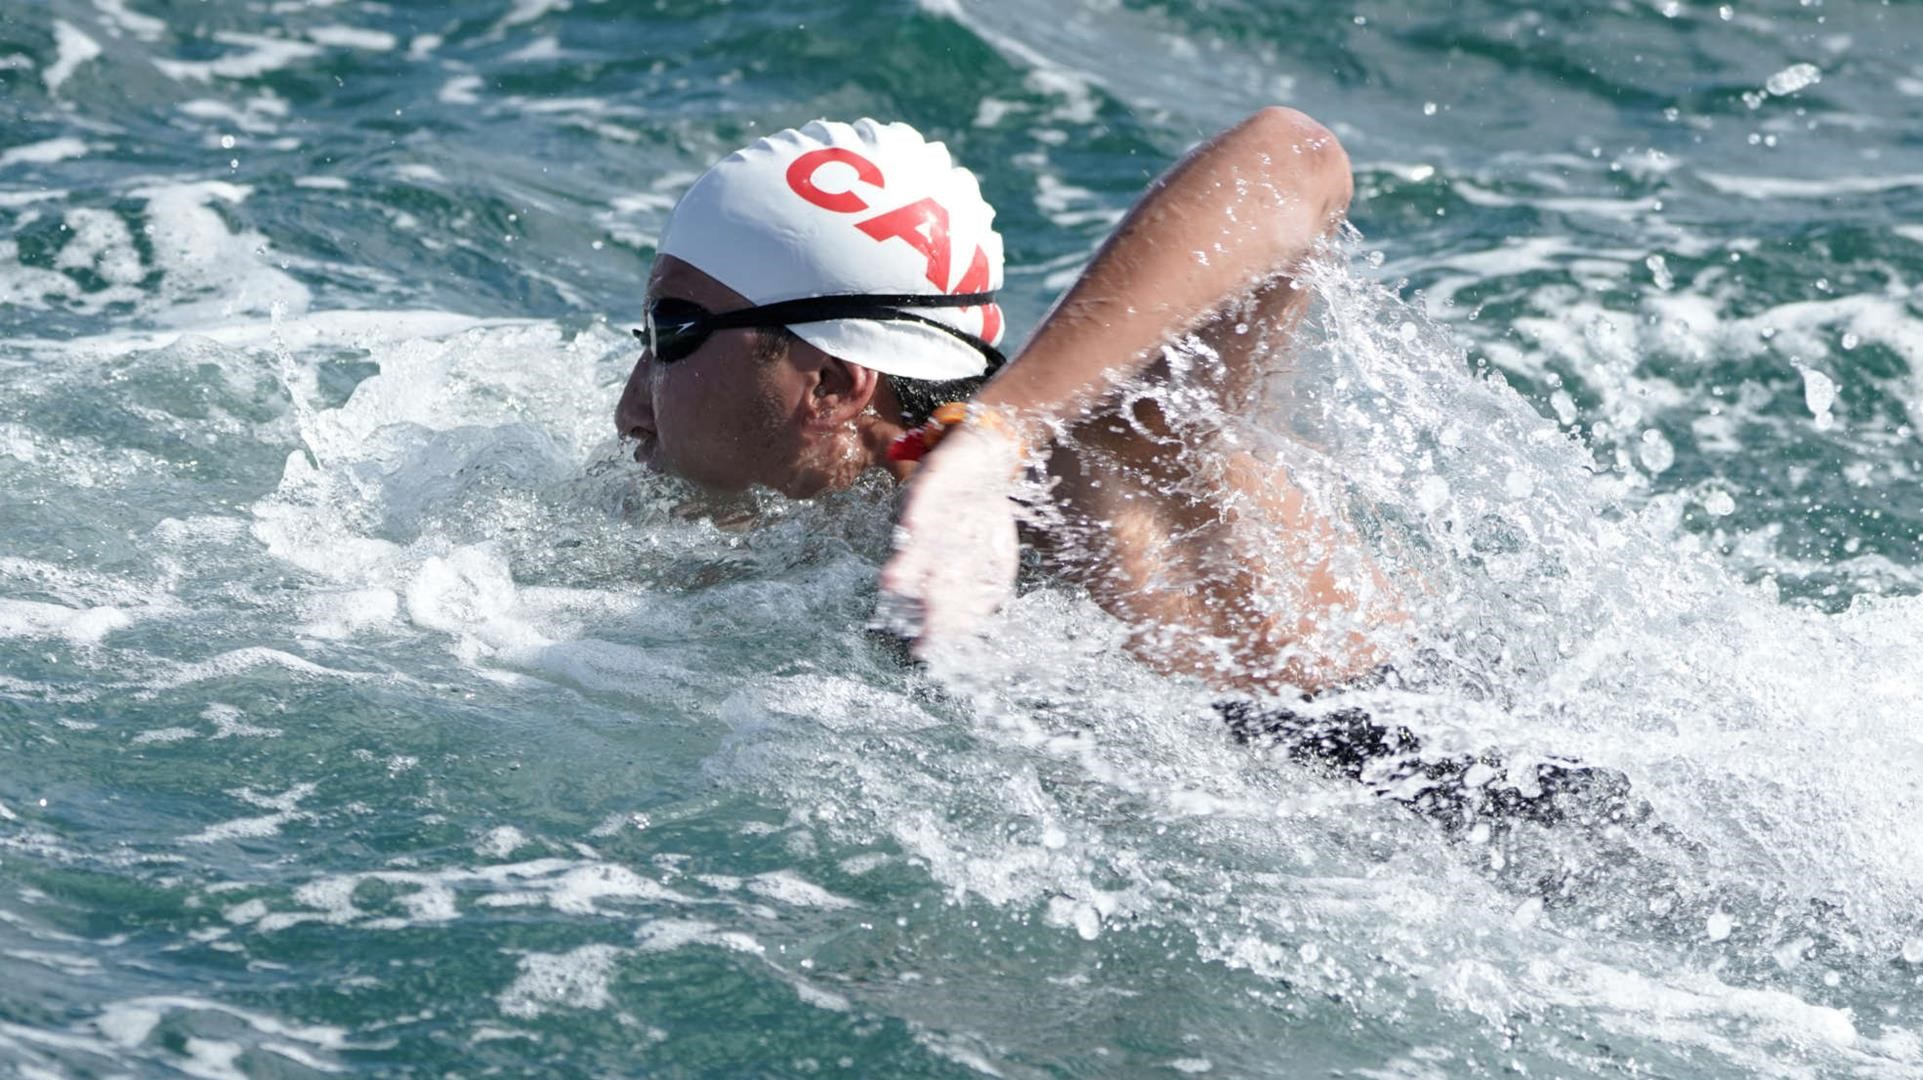 Fan in action during an open water race